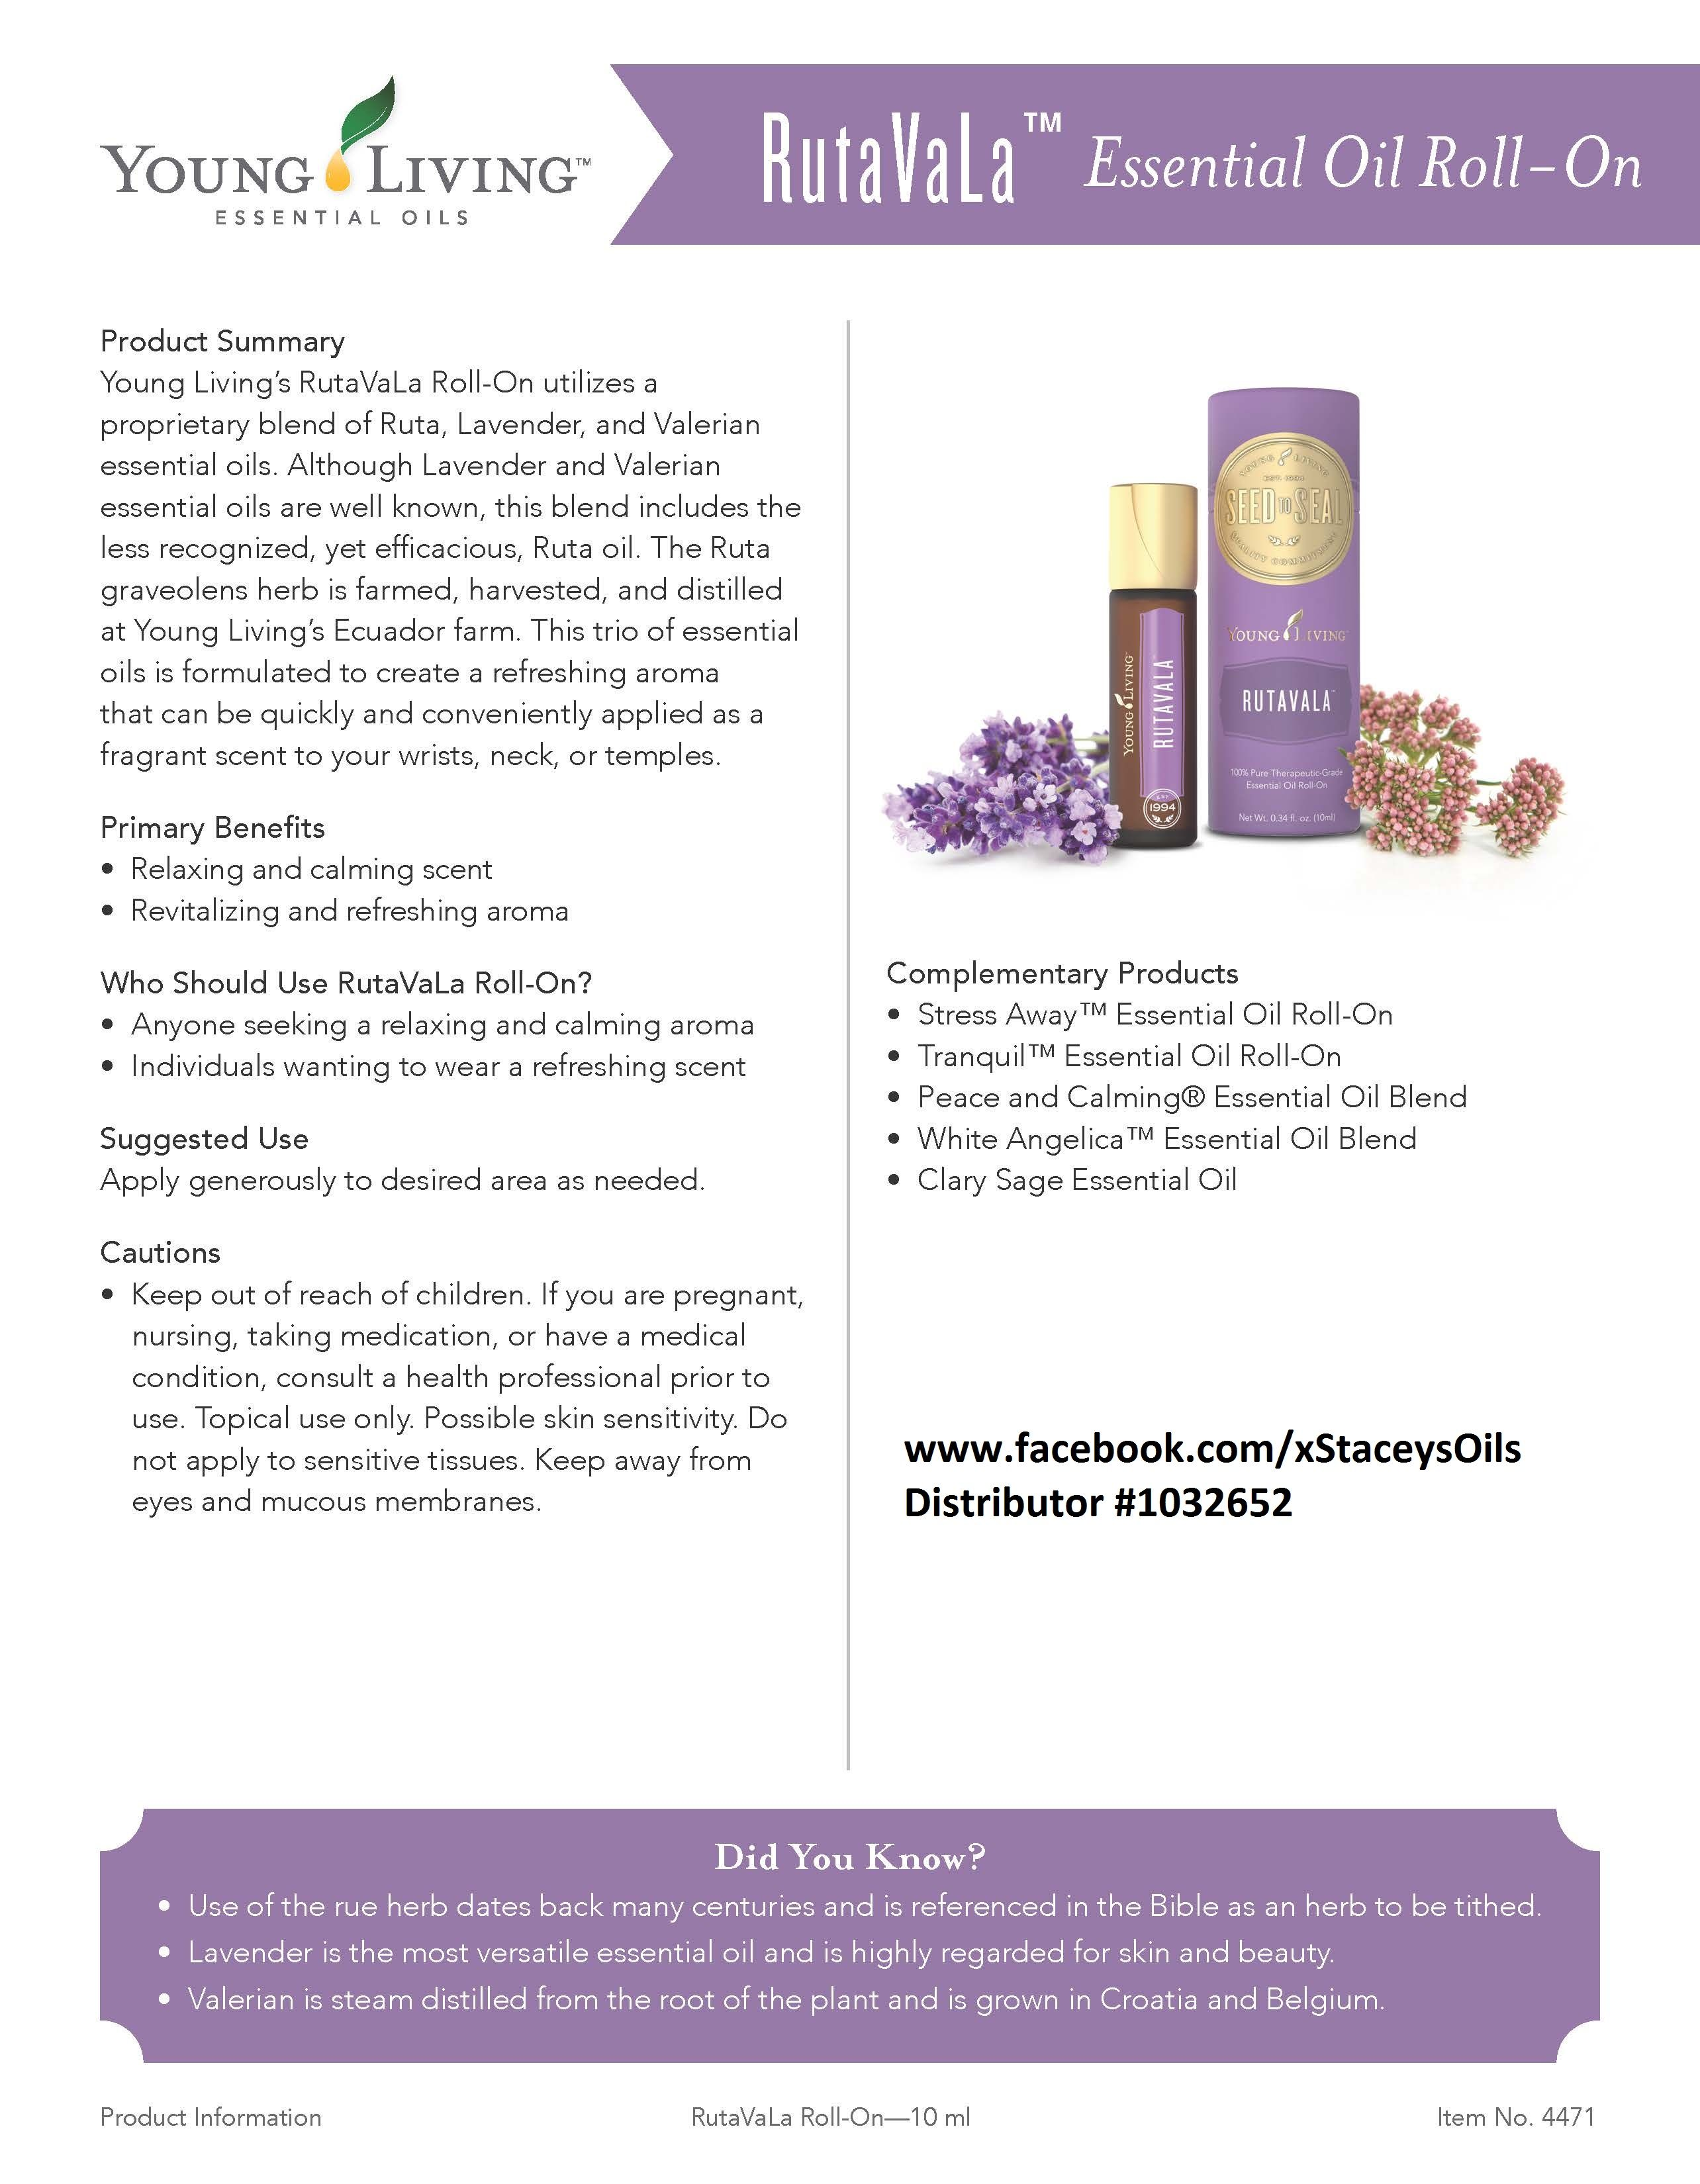 Young Living Essential Oils - RutaVaLa - Learn more about Young Living Essential Oils and how they can support your health – contact me! www.facebook.com/xStaceysOils Distributor# 1032652